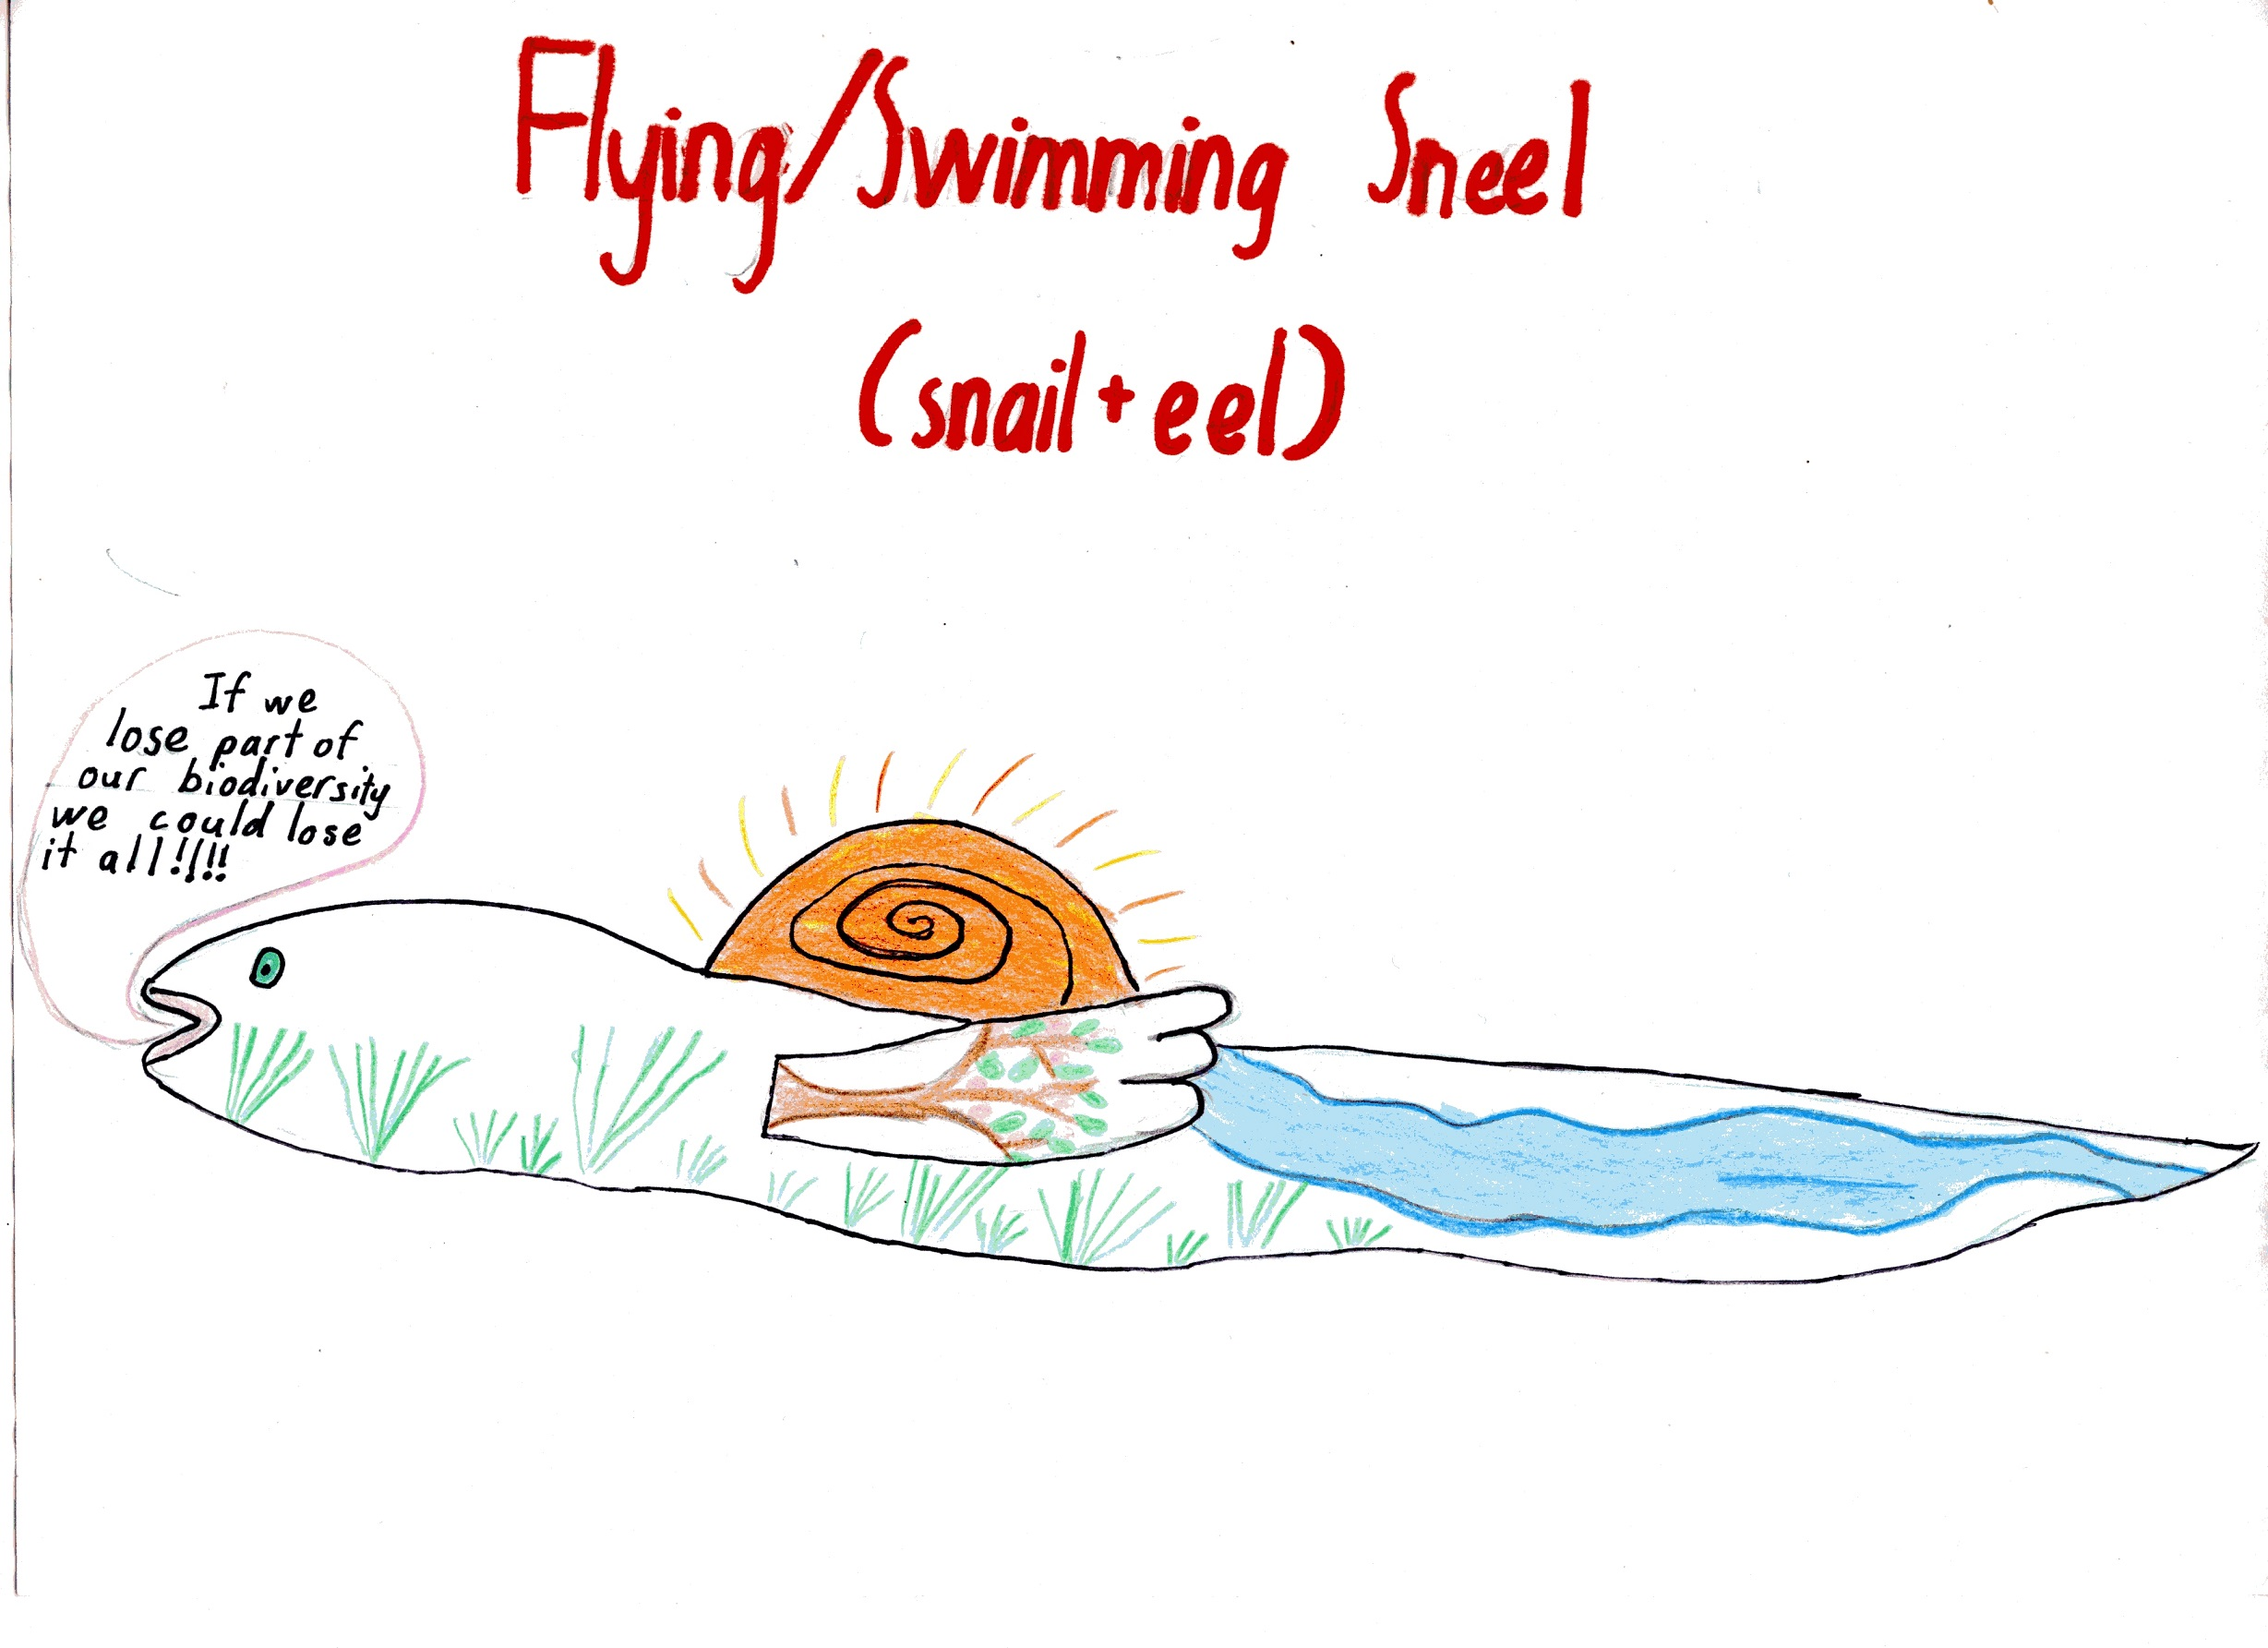 The Flying/Swimming Sneel by Annika (age 10)